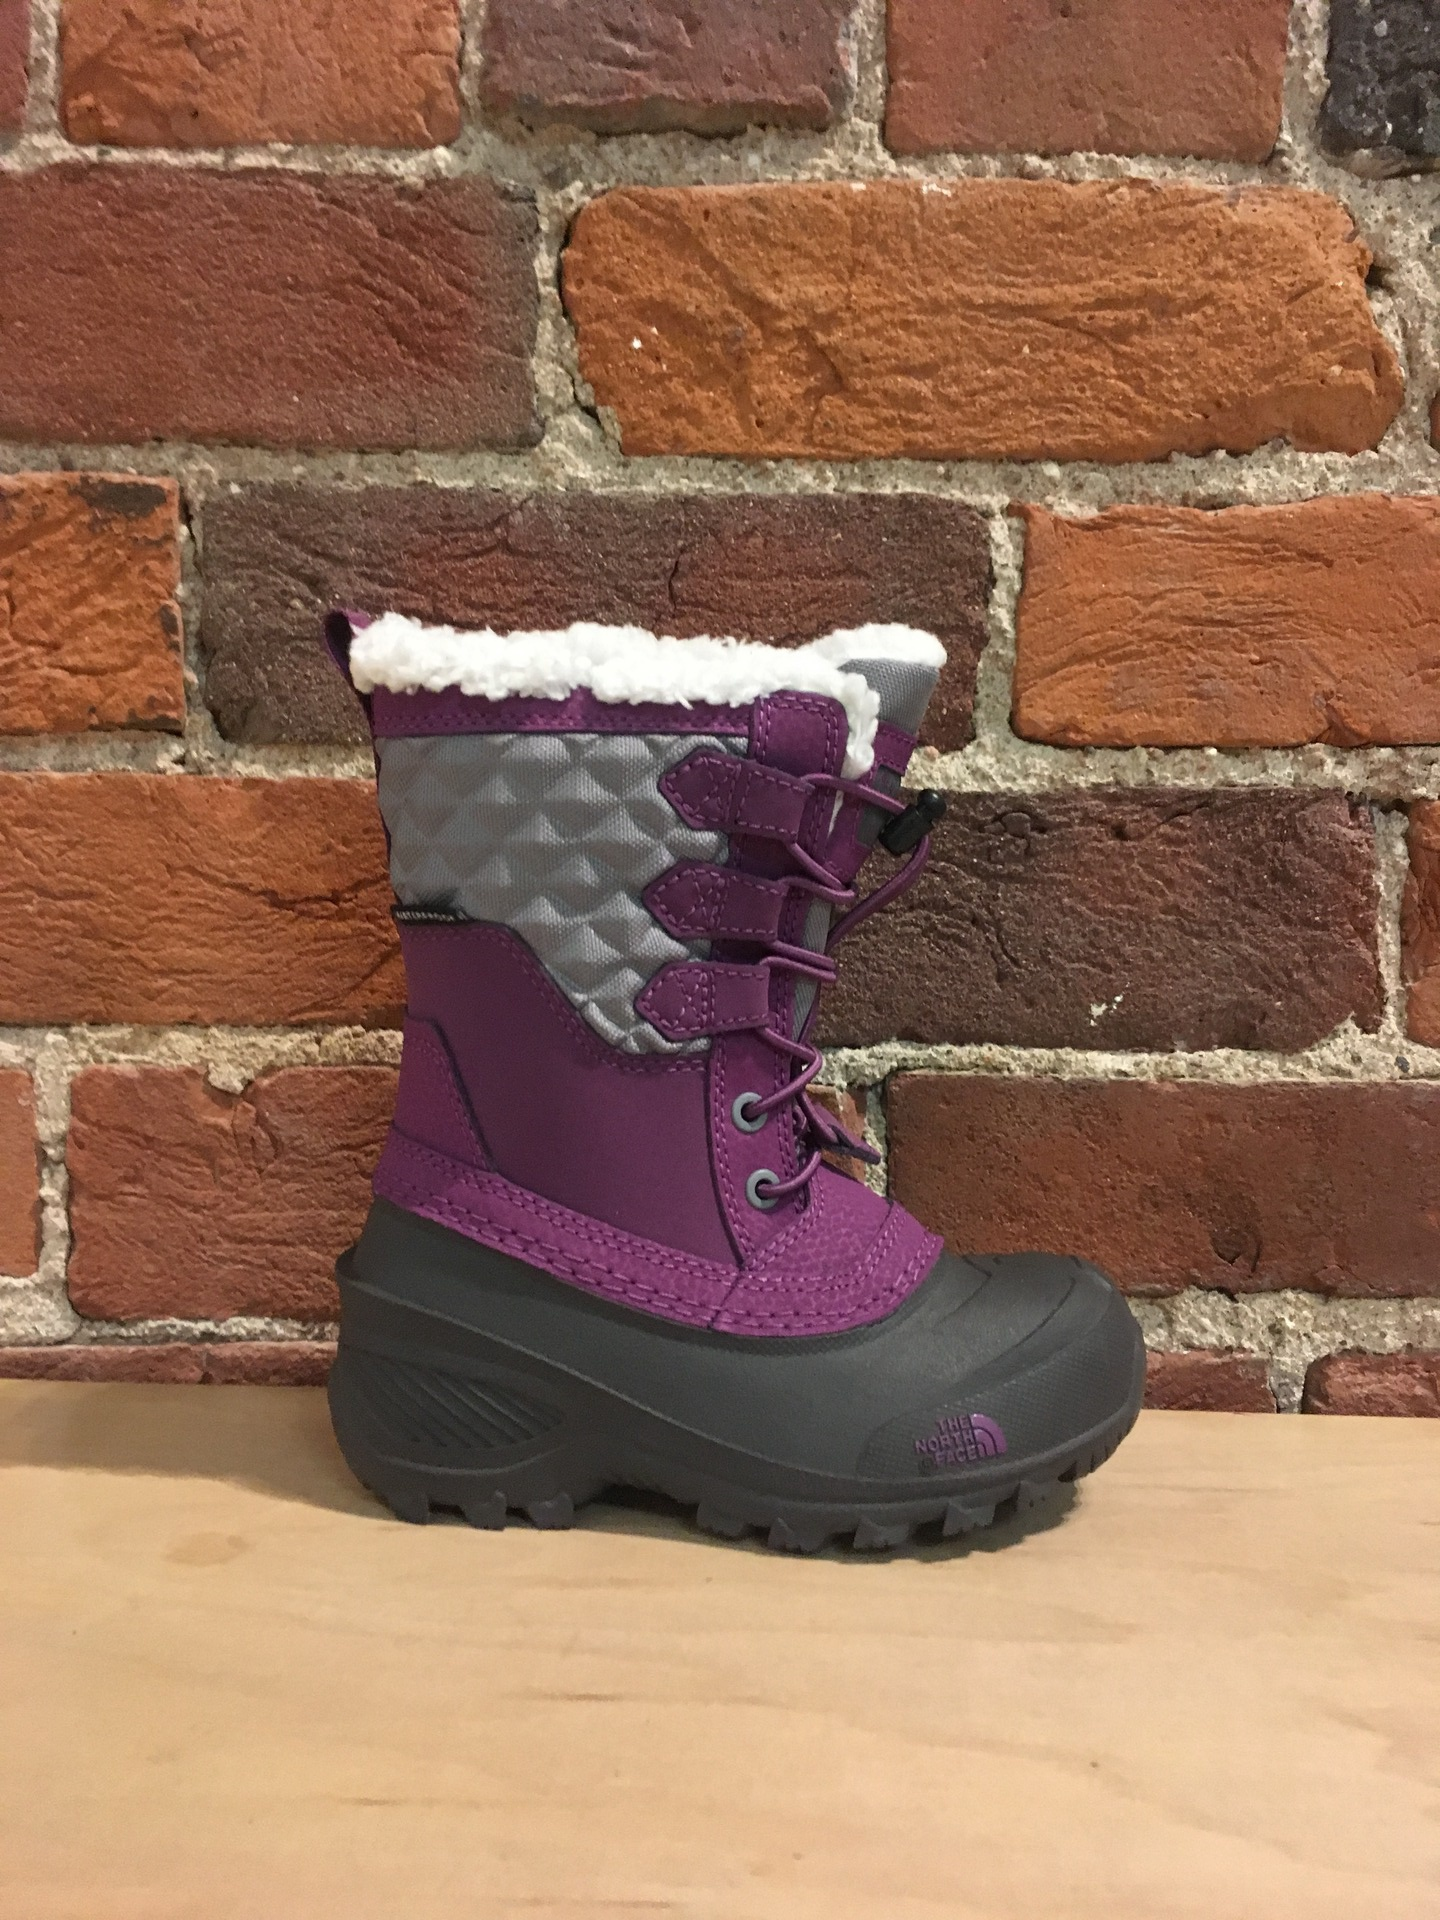 cb3e6f5f1e THE NORTH FACE - YOUTH SHELLISTA LACE III IN Q SILVER GREY/WOOD VIOLET - the  Urban Shoe Myth